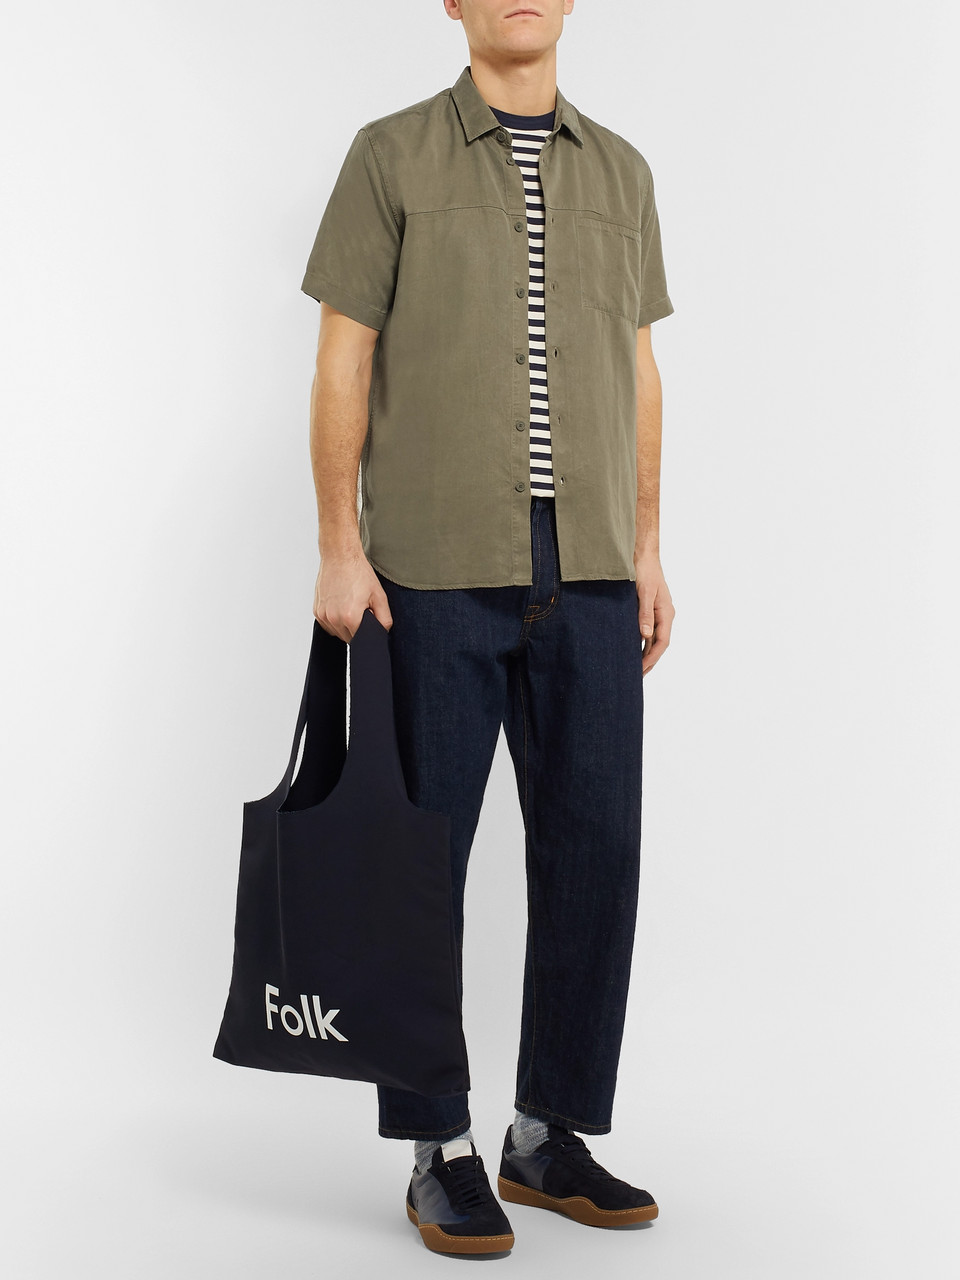 Folk Burner Garment-Dyed Lyocell Shirt